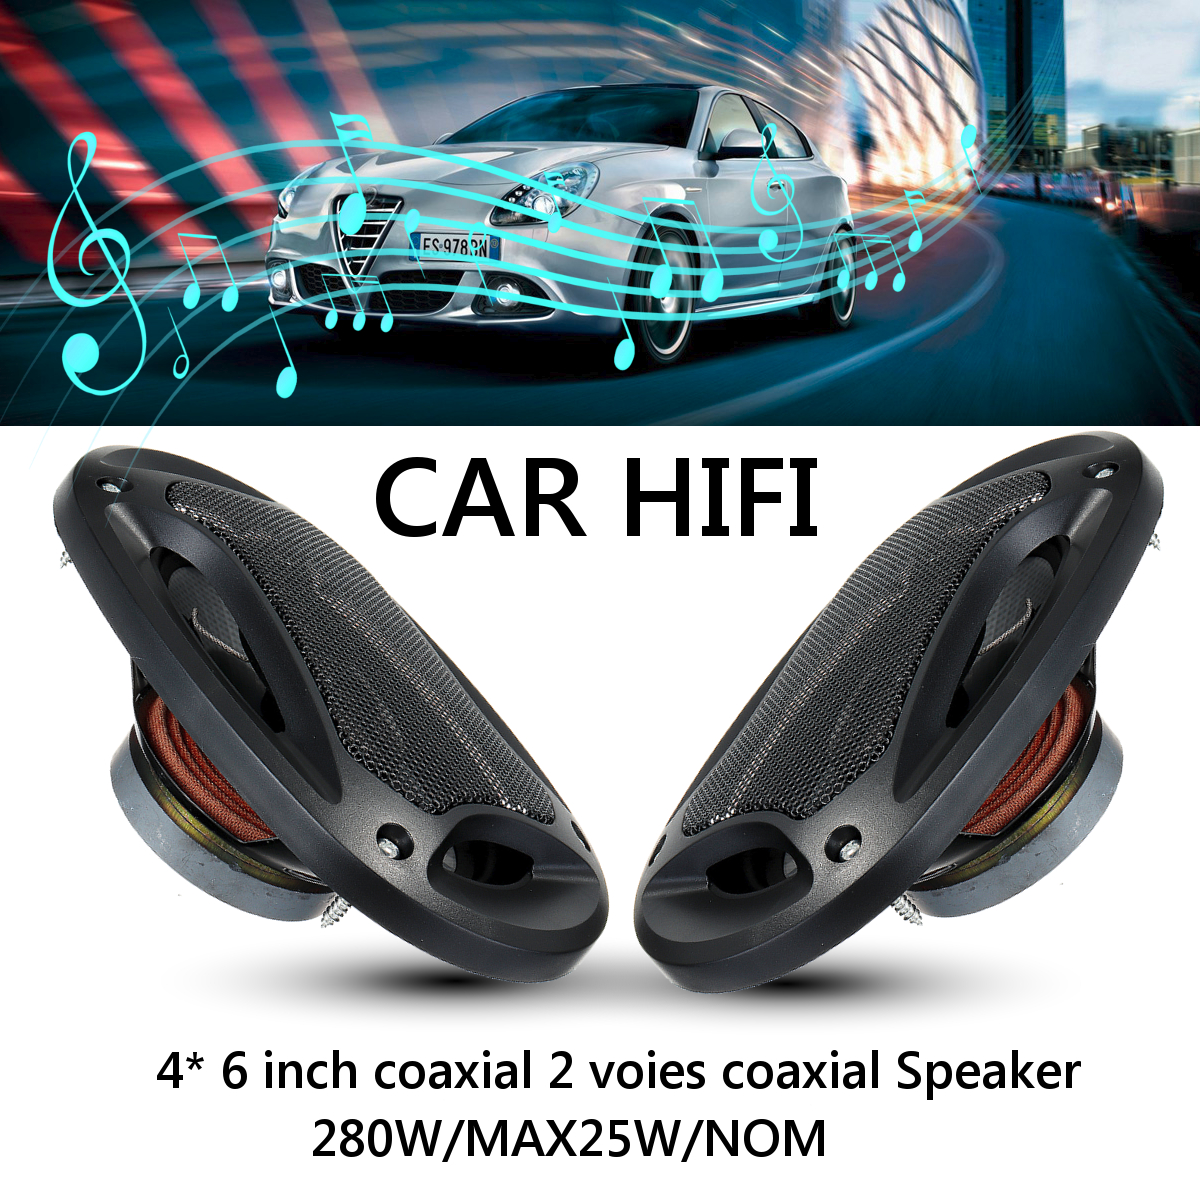 2pcs 4x6 inch 280W 2 Way Car Speaker and Subwoofer HIFI Speaker Car Rear / Front Door Audio Music Stereo Coxial Speakers System Coaxial speakers     - title=